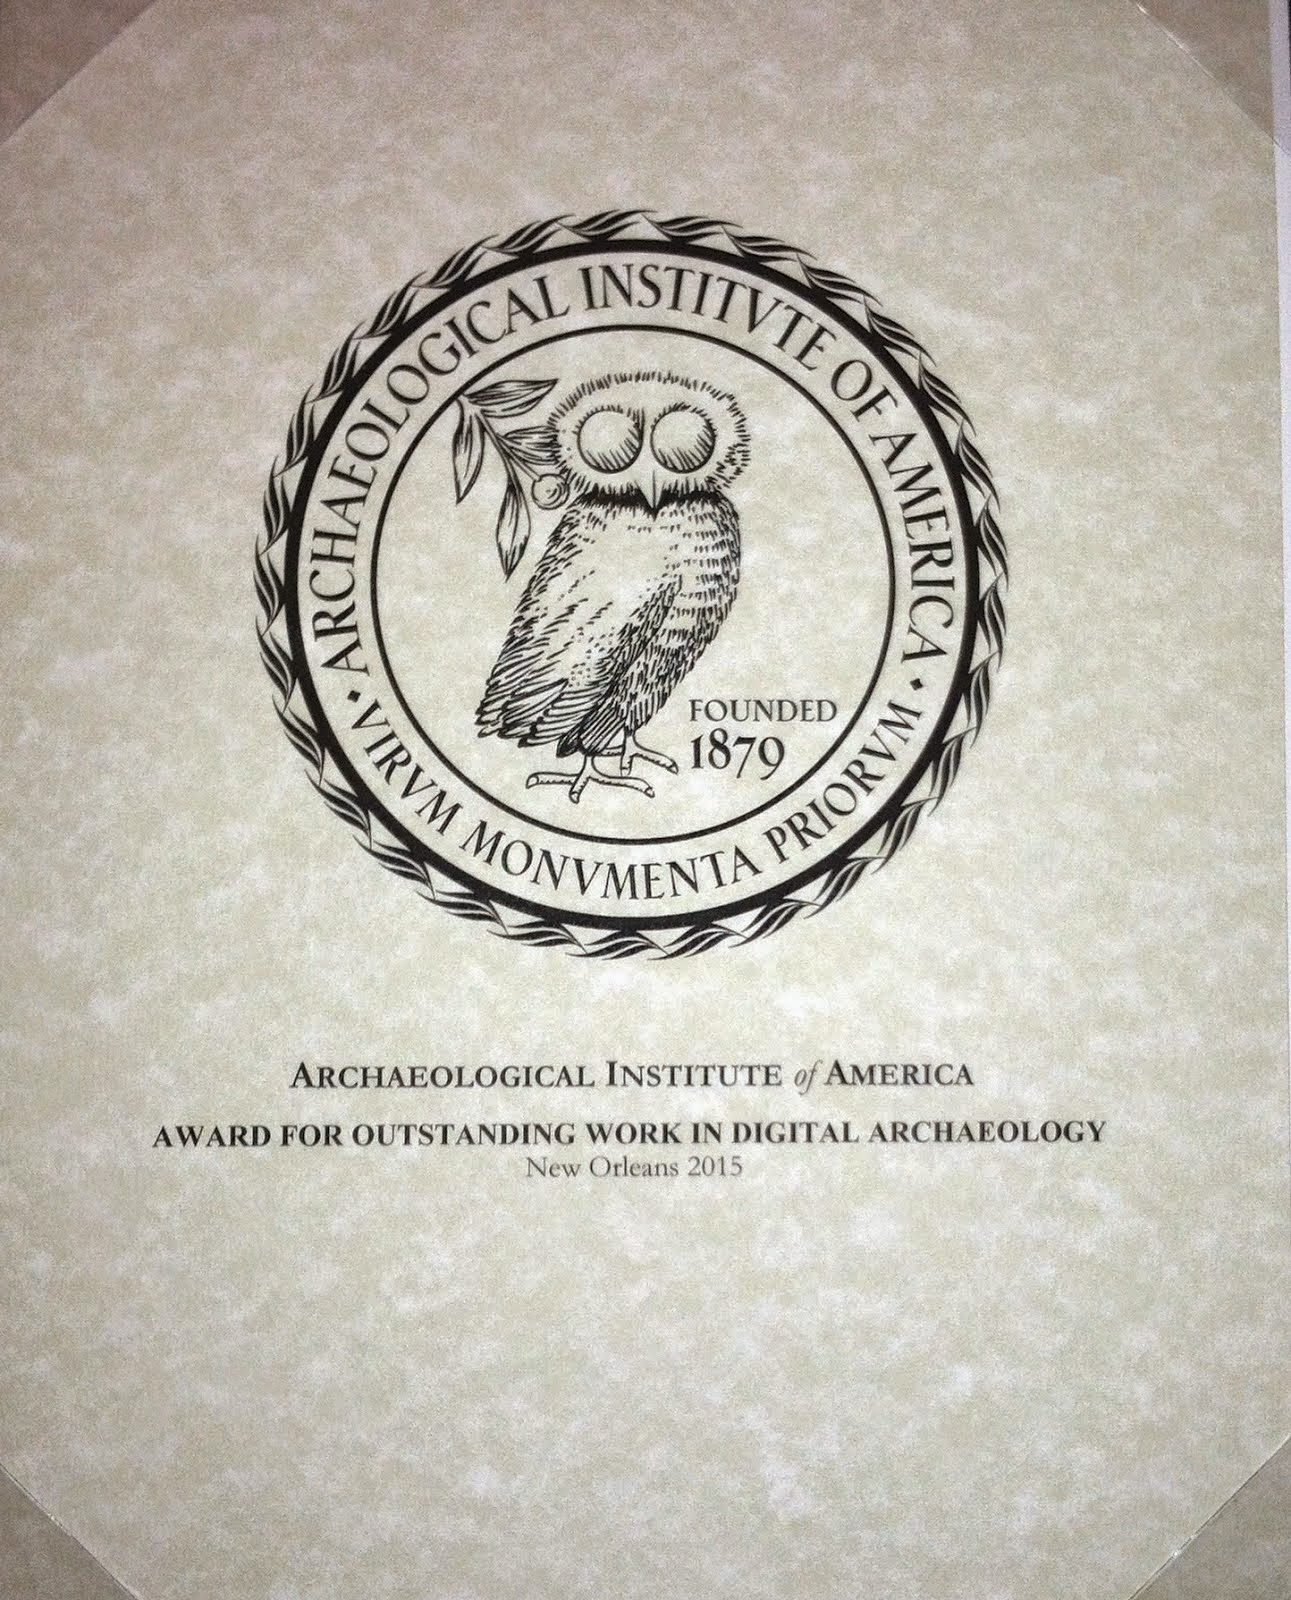 Winner of the AIA Award for Outstanding Work in Digital Archeology 2015